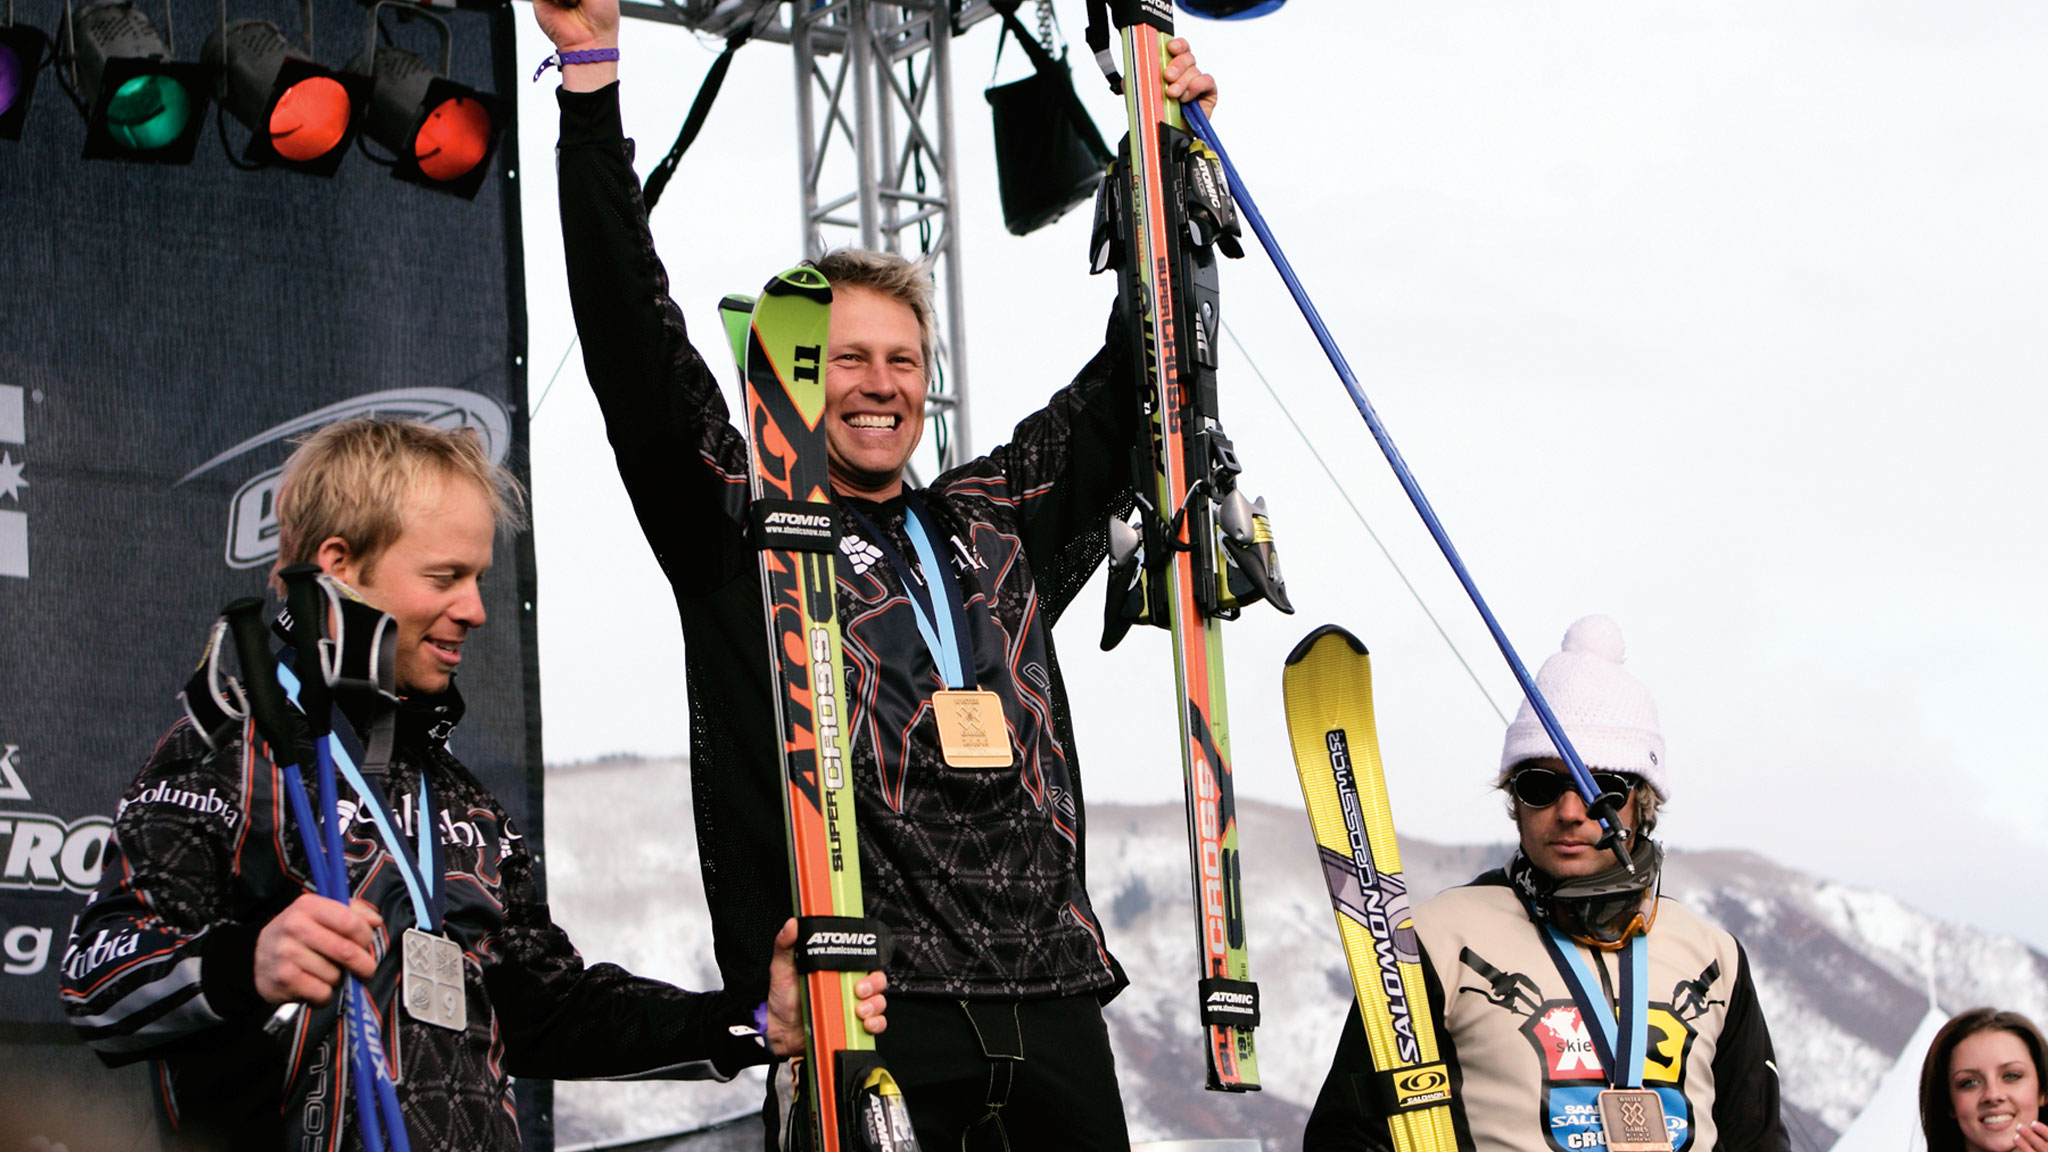 Reggie, Zach and Frenchman Enak Gavaggio on the Skier X podium in 2005.